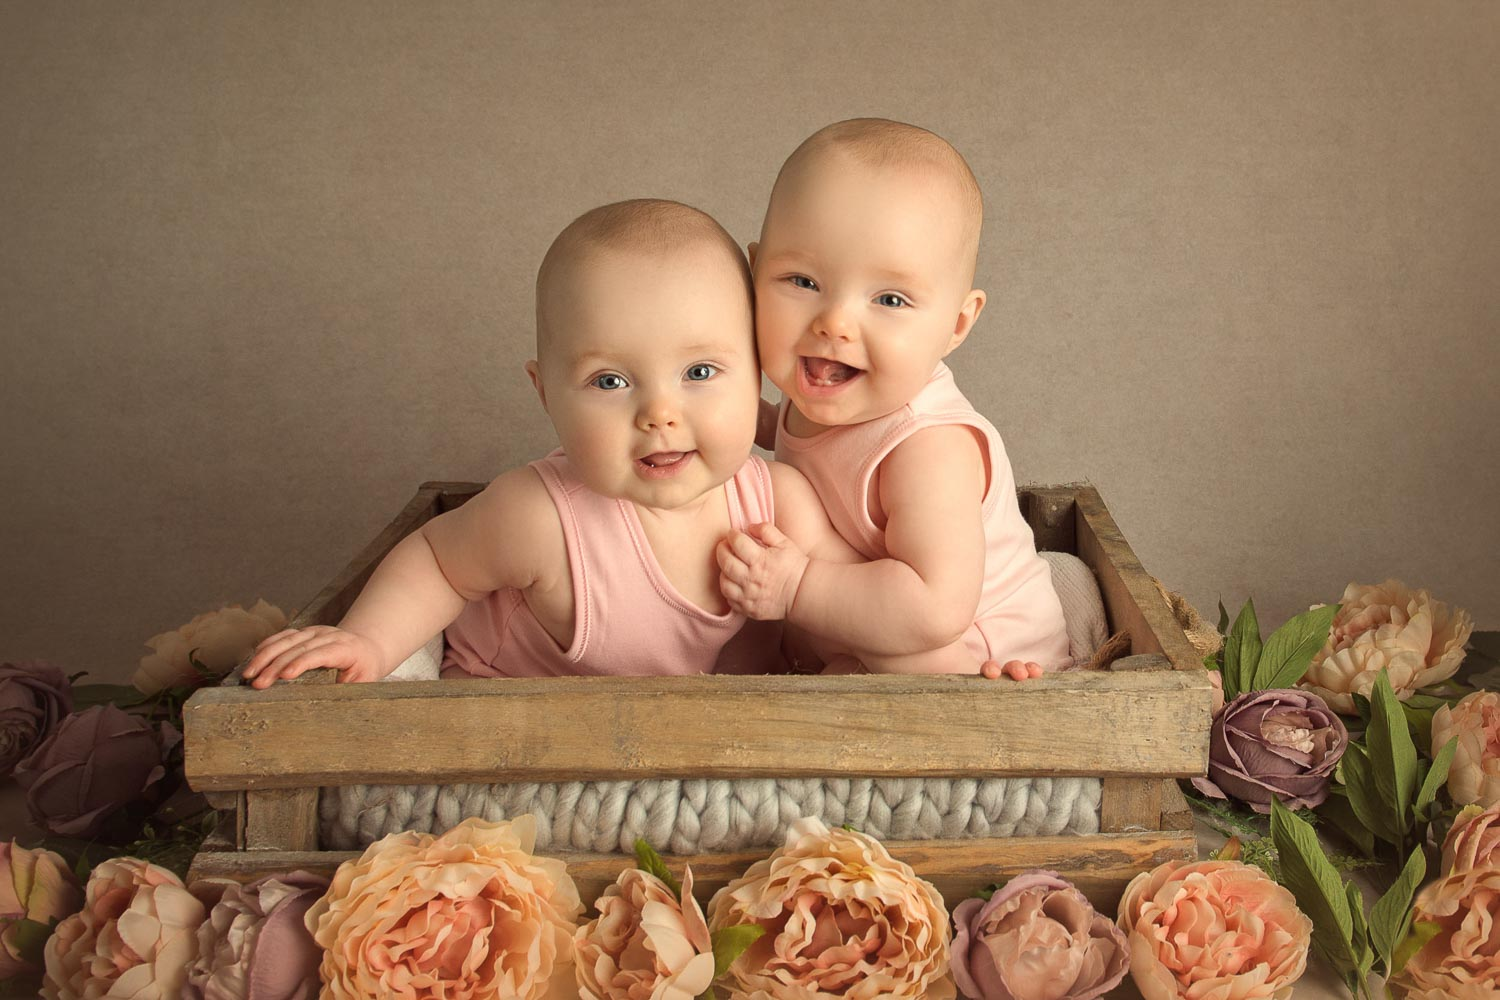 twin babies in a box with flowers